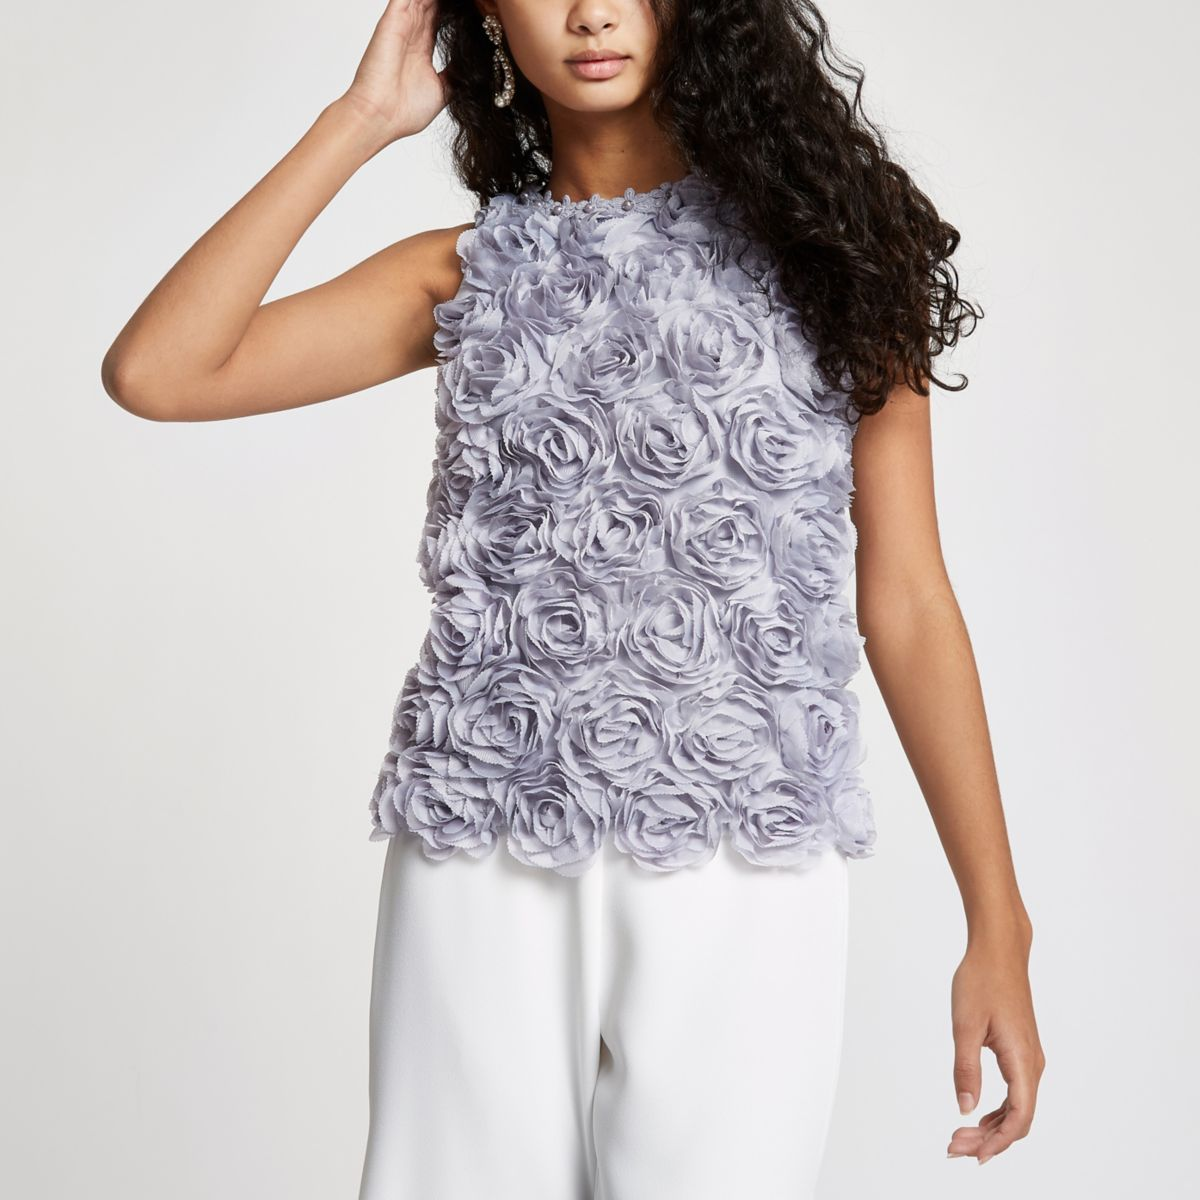 Grey Floral Sleeveless Top                                  Grey Floral Sleeveless Top by River Island